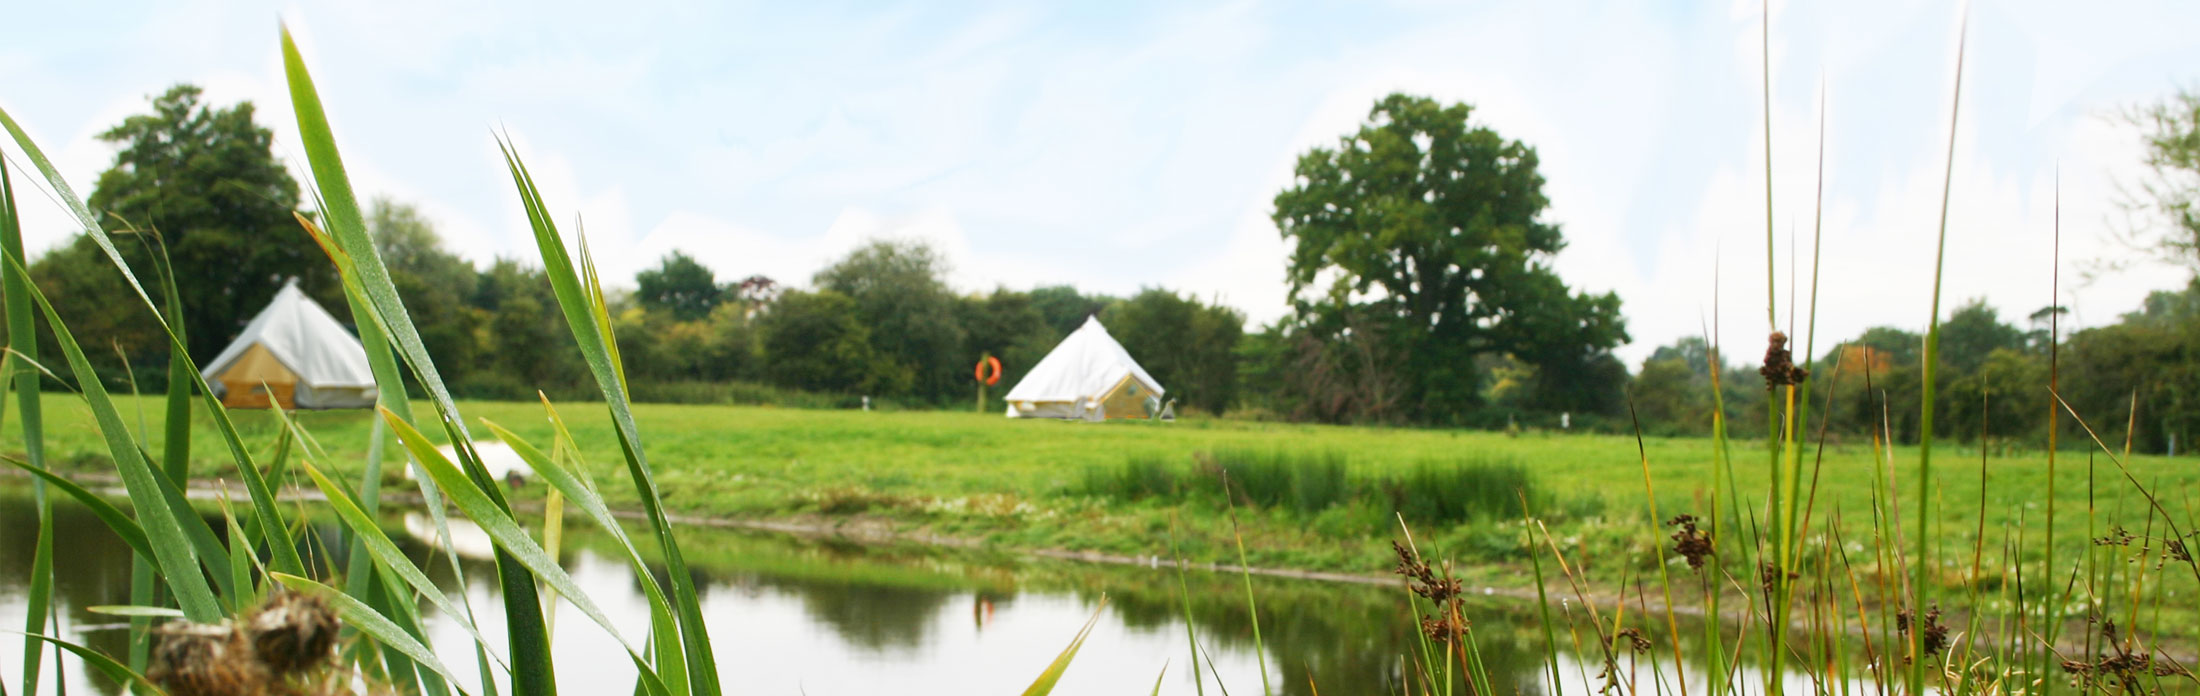 Bell tent holidays